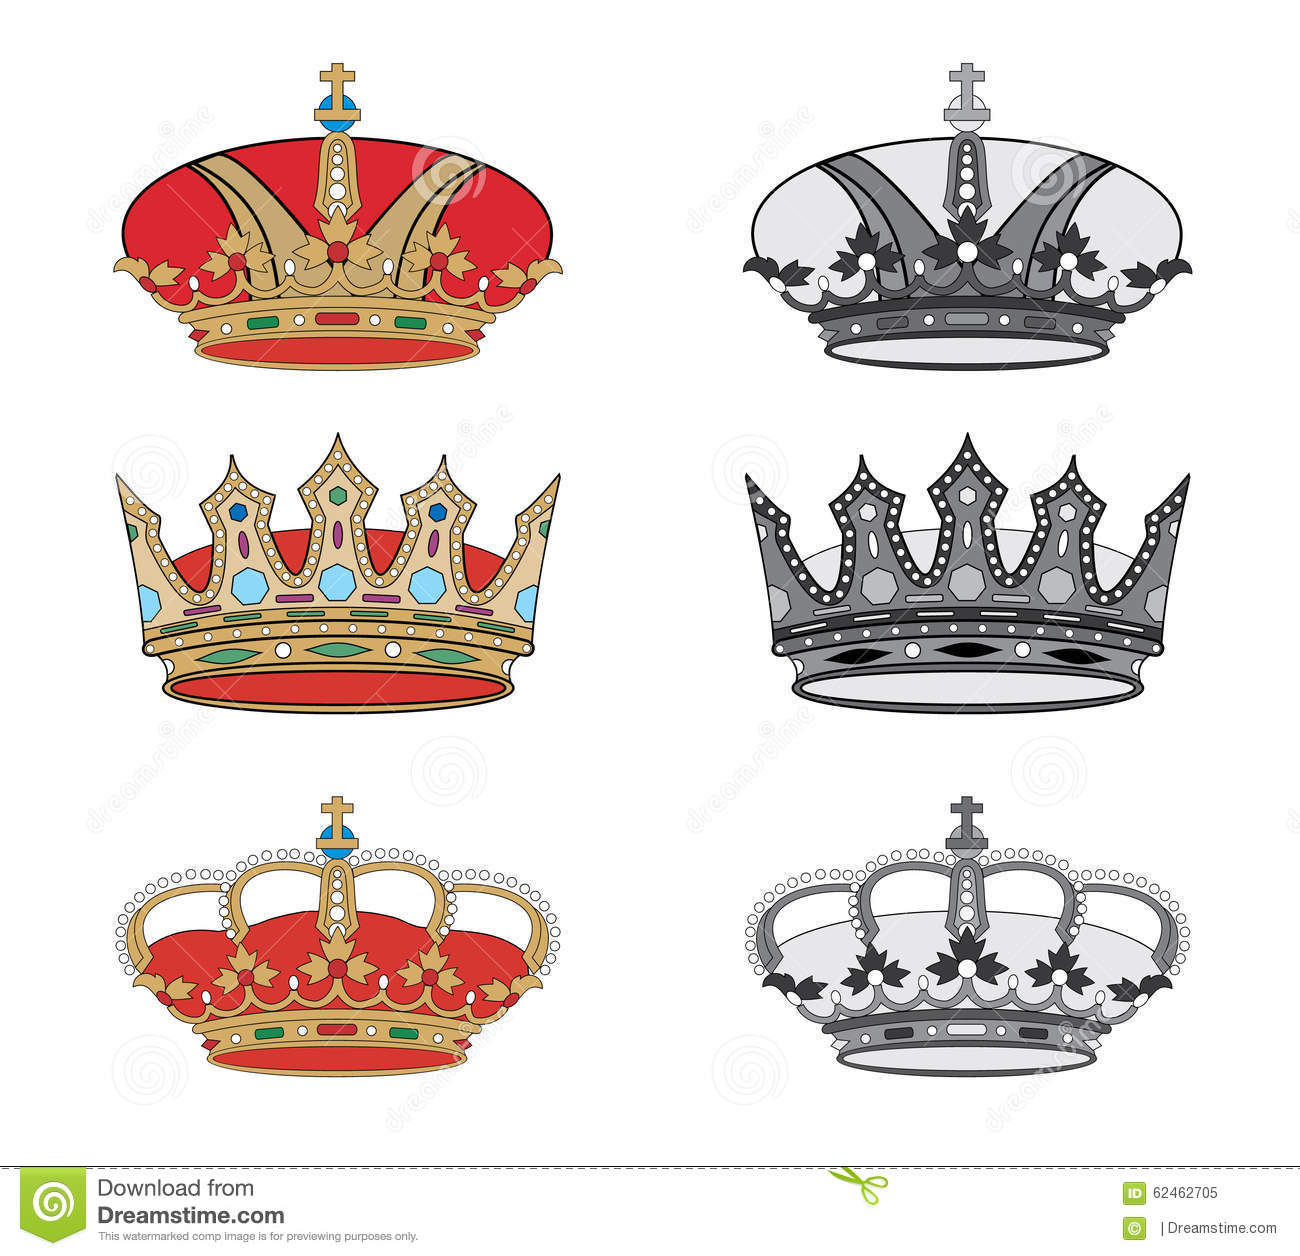 Royal Crowns Emblems Set Heraldic Coat Of Arms Decorative